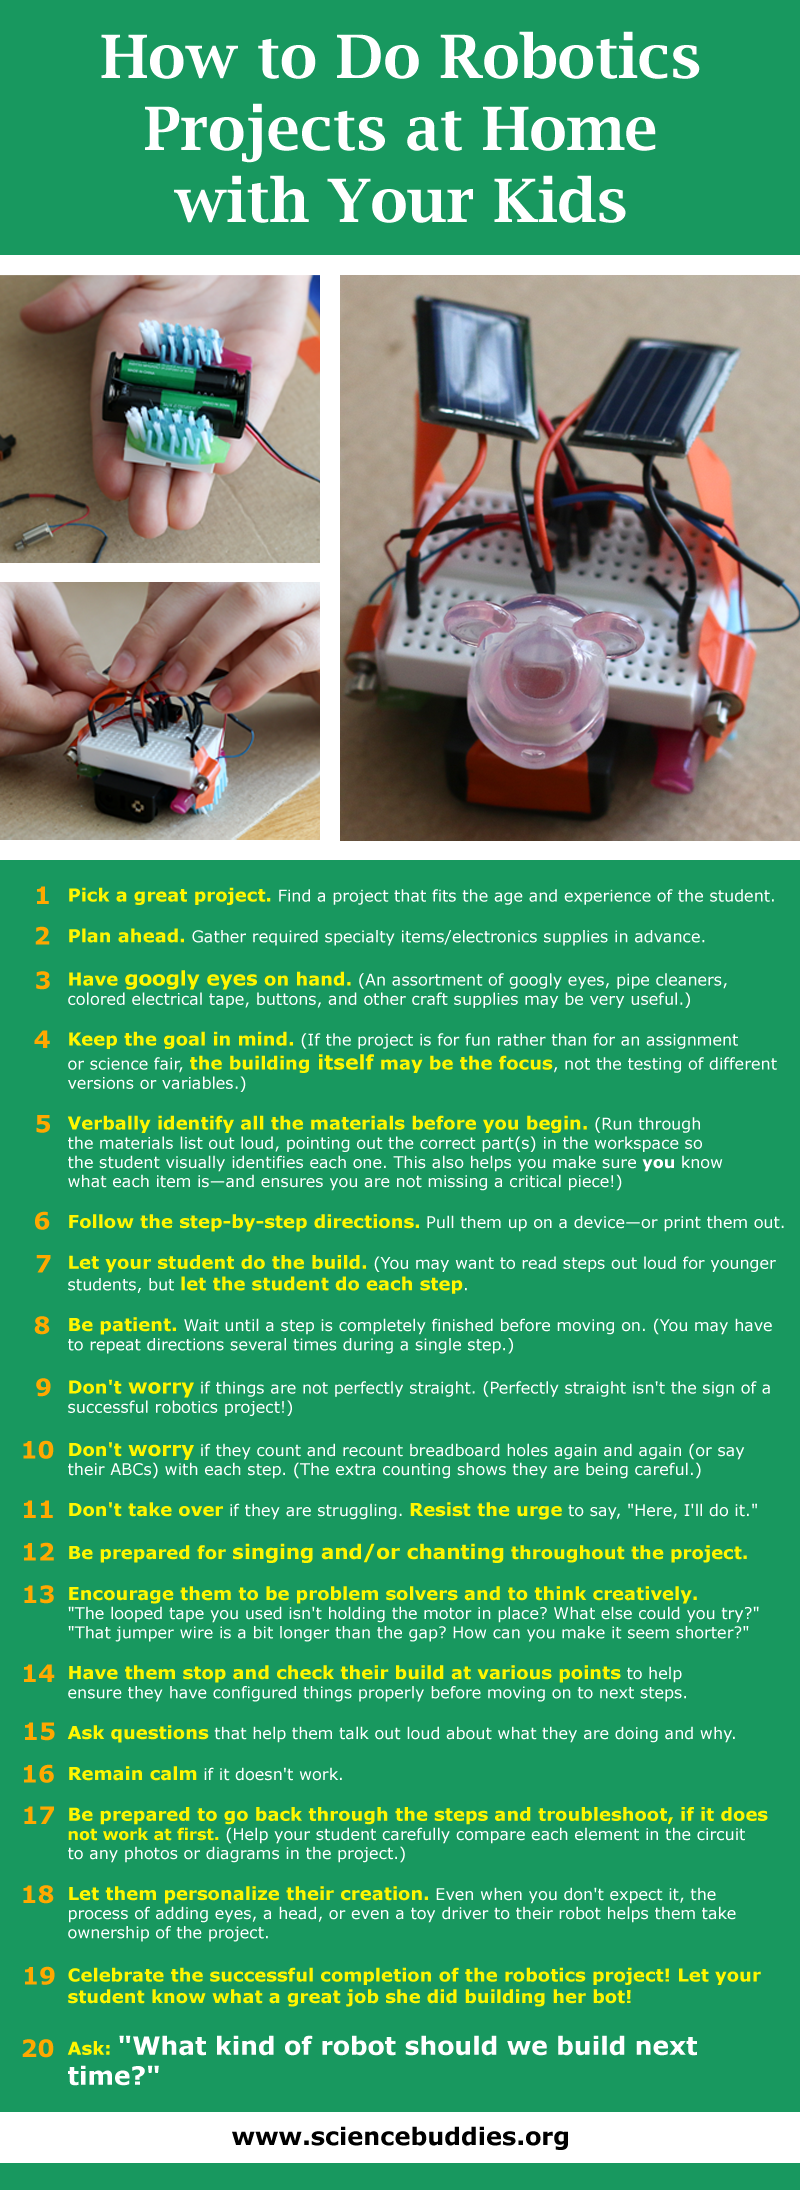 how to do robotics at home with your kids